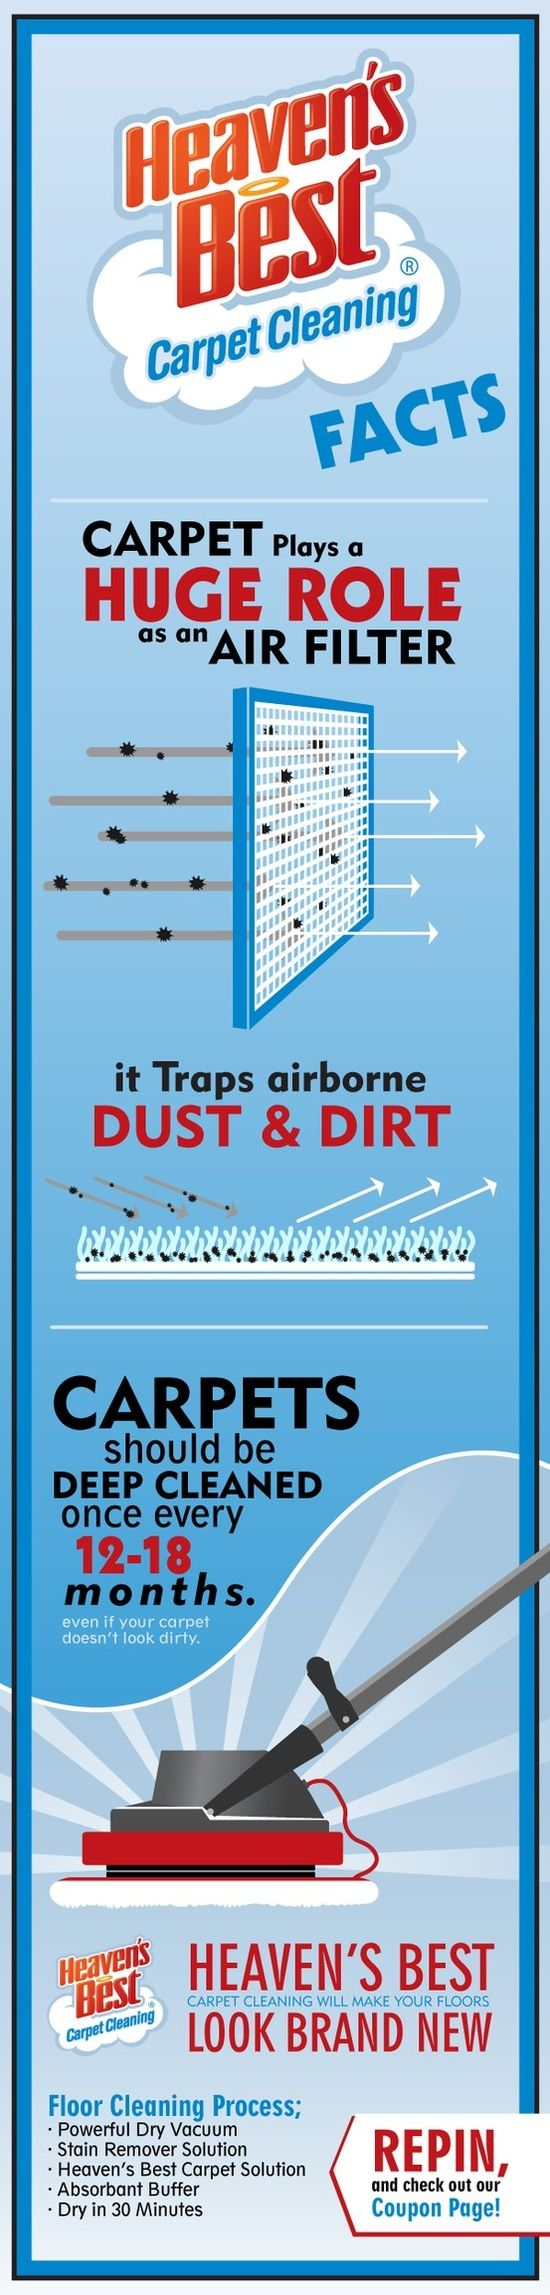 Clean Carpets Help To Keep The Air In Your Home